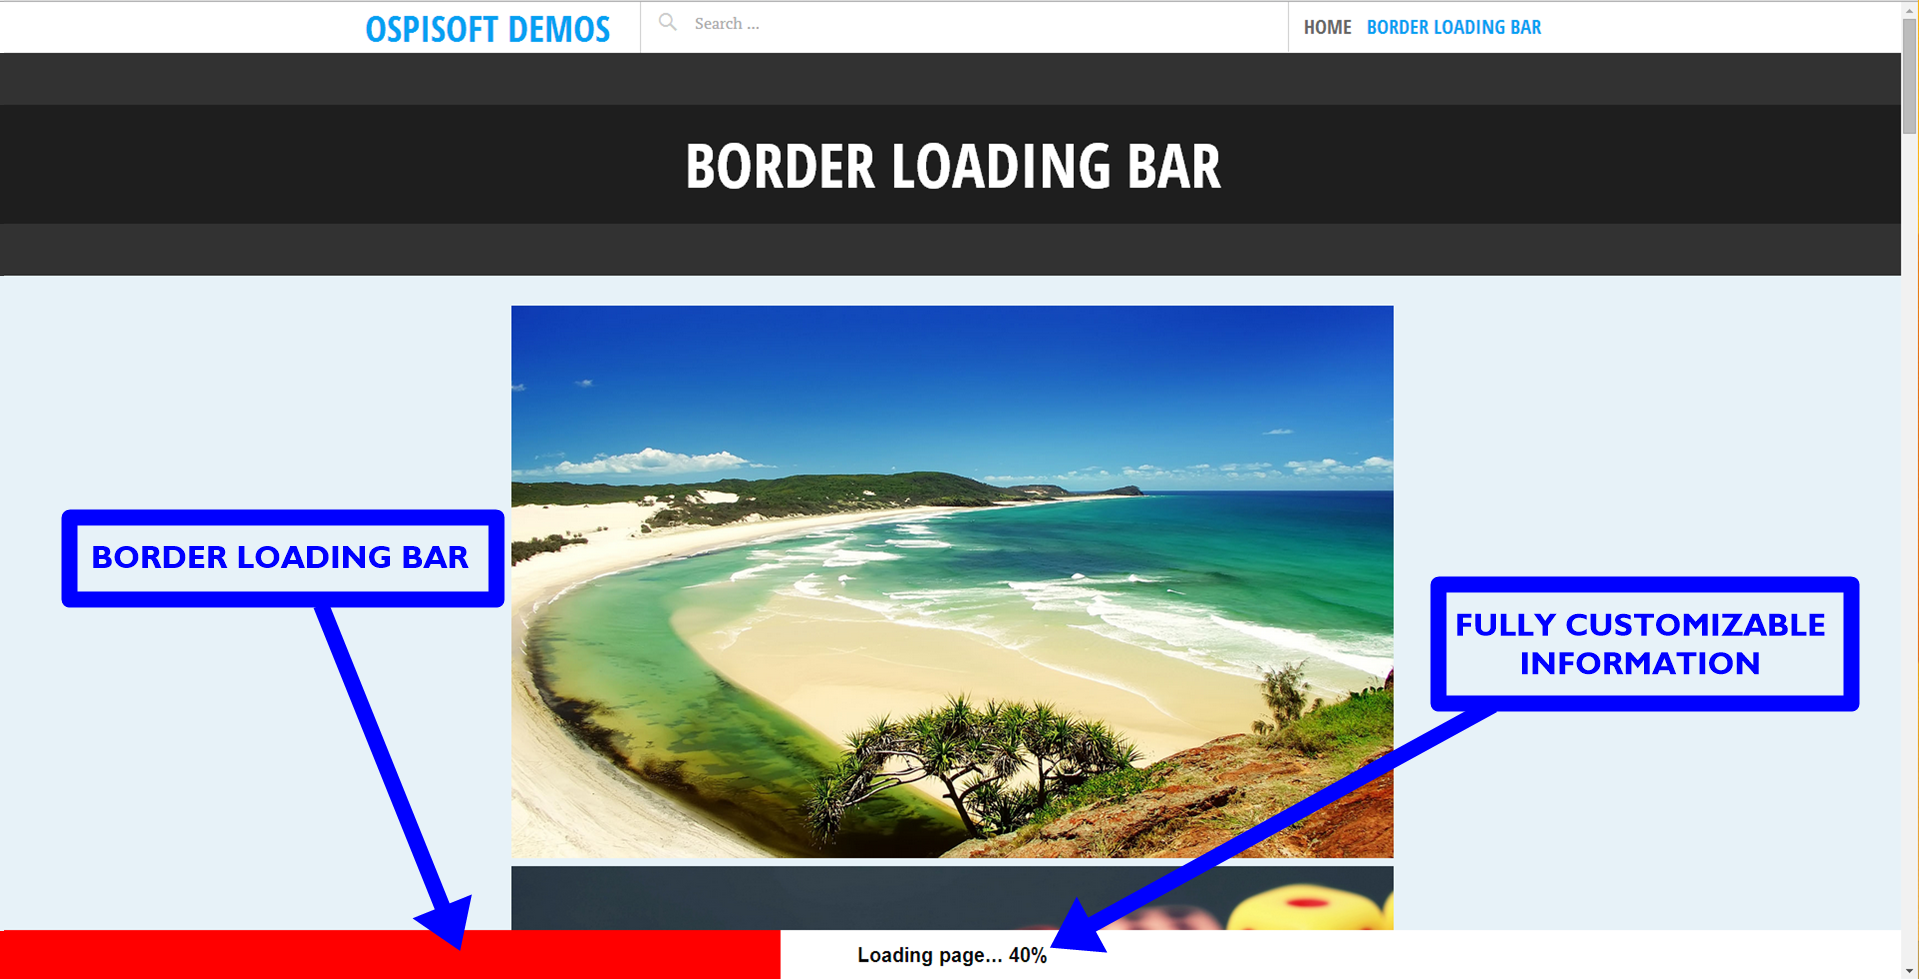 border-loading-bar screenshot 1